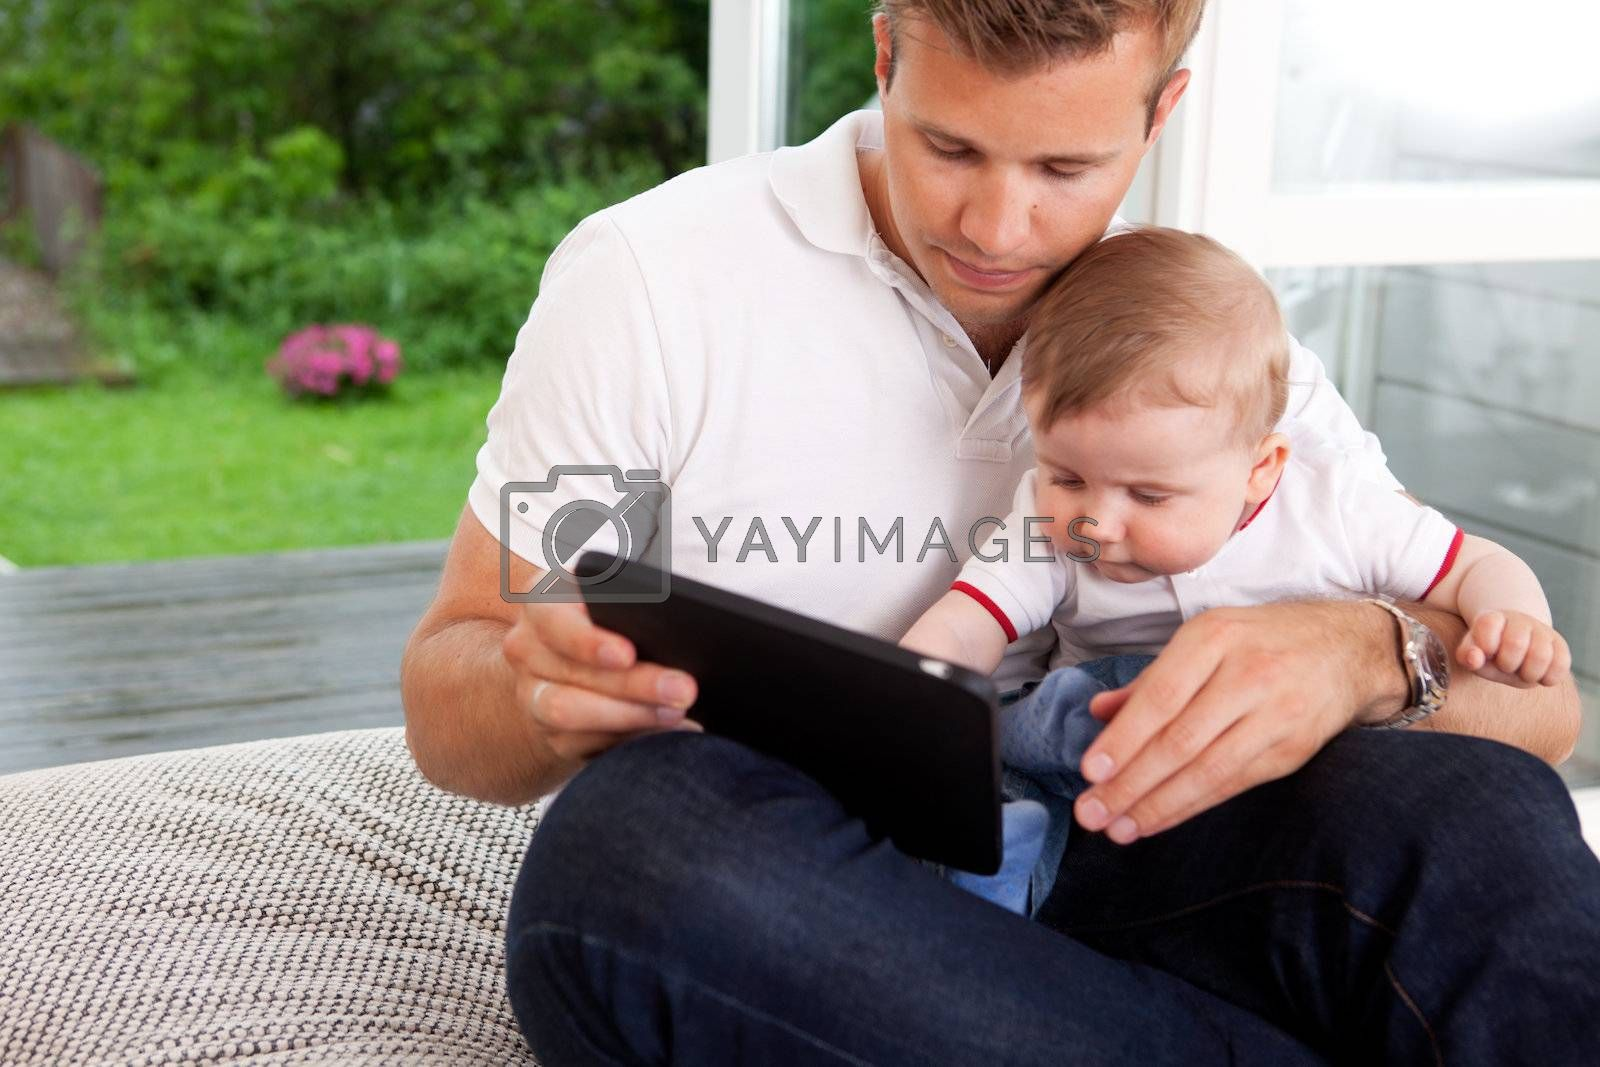 A father and son using a digital tablet in a home interior